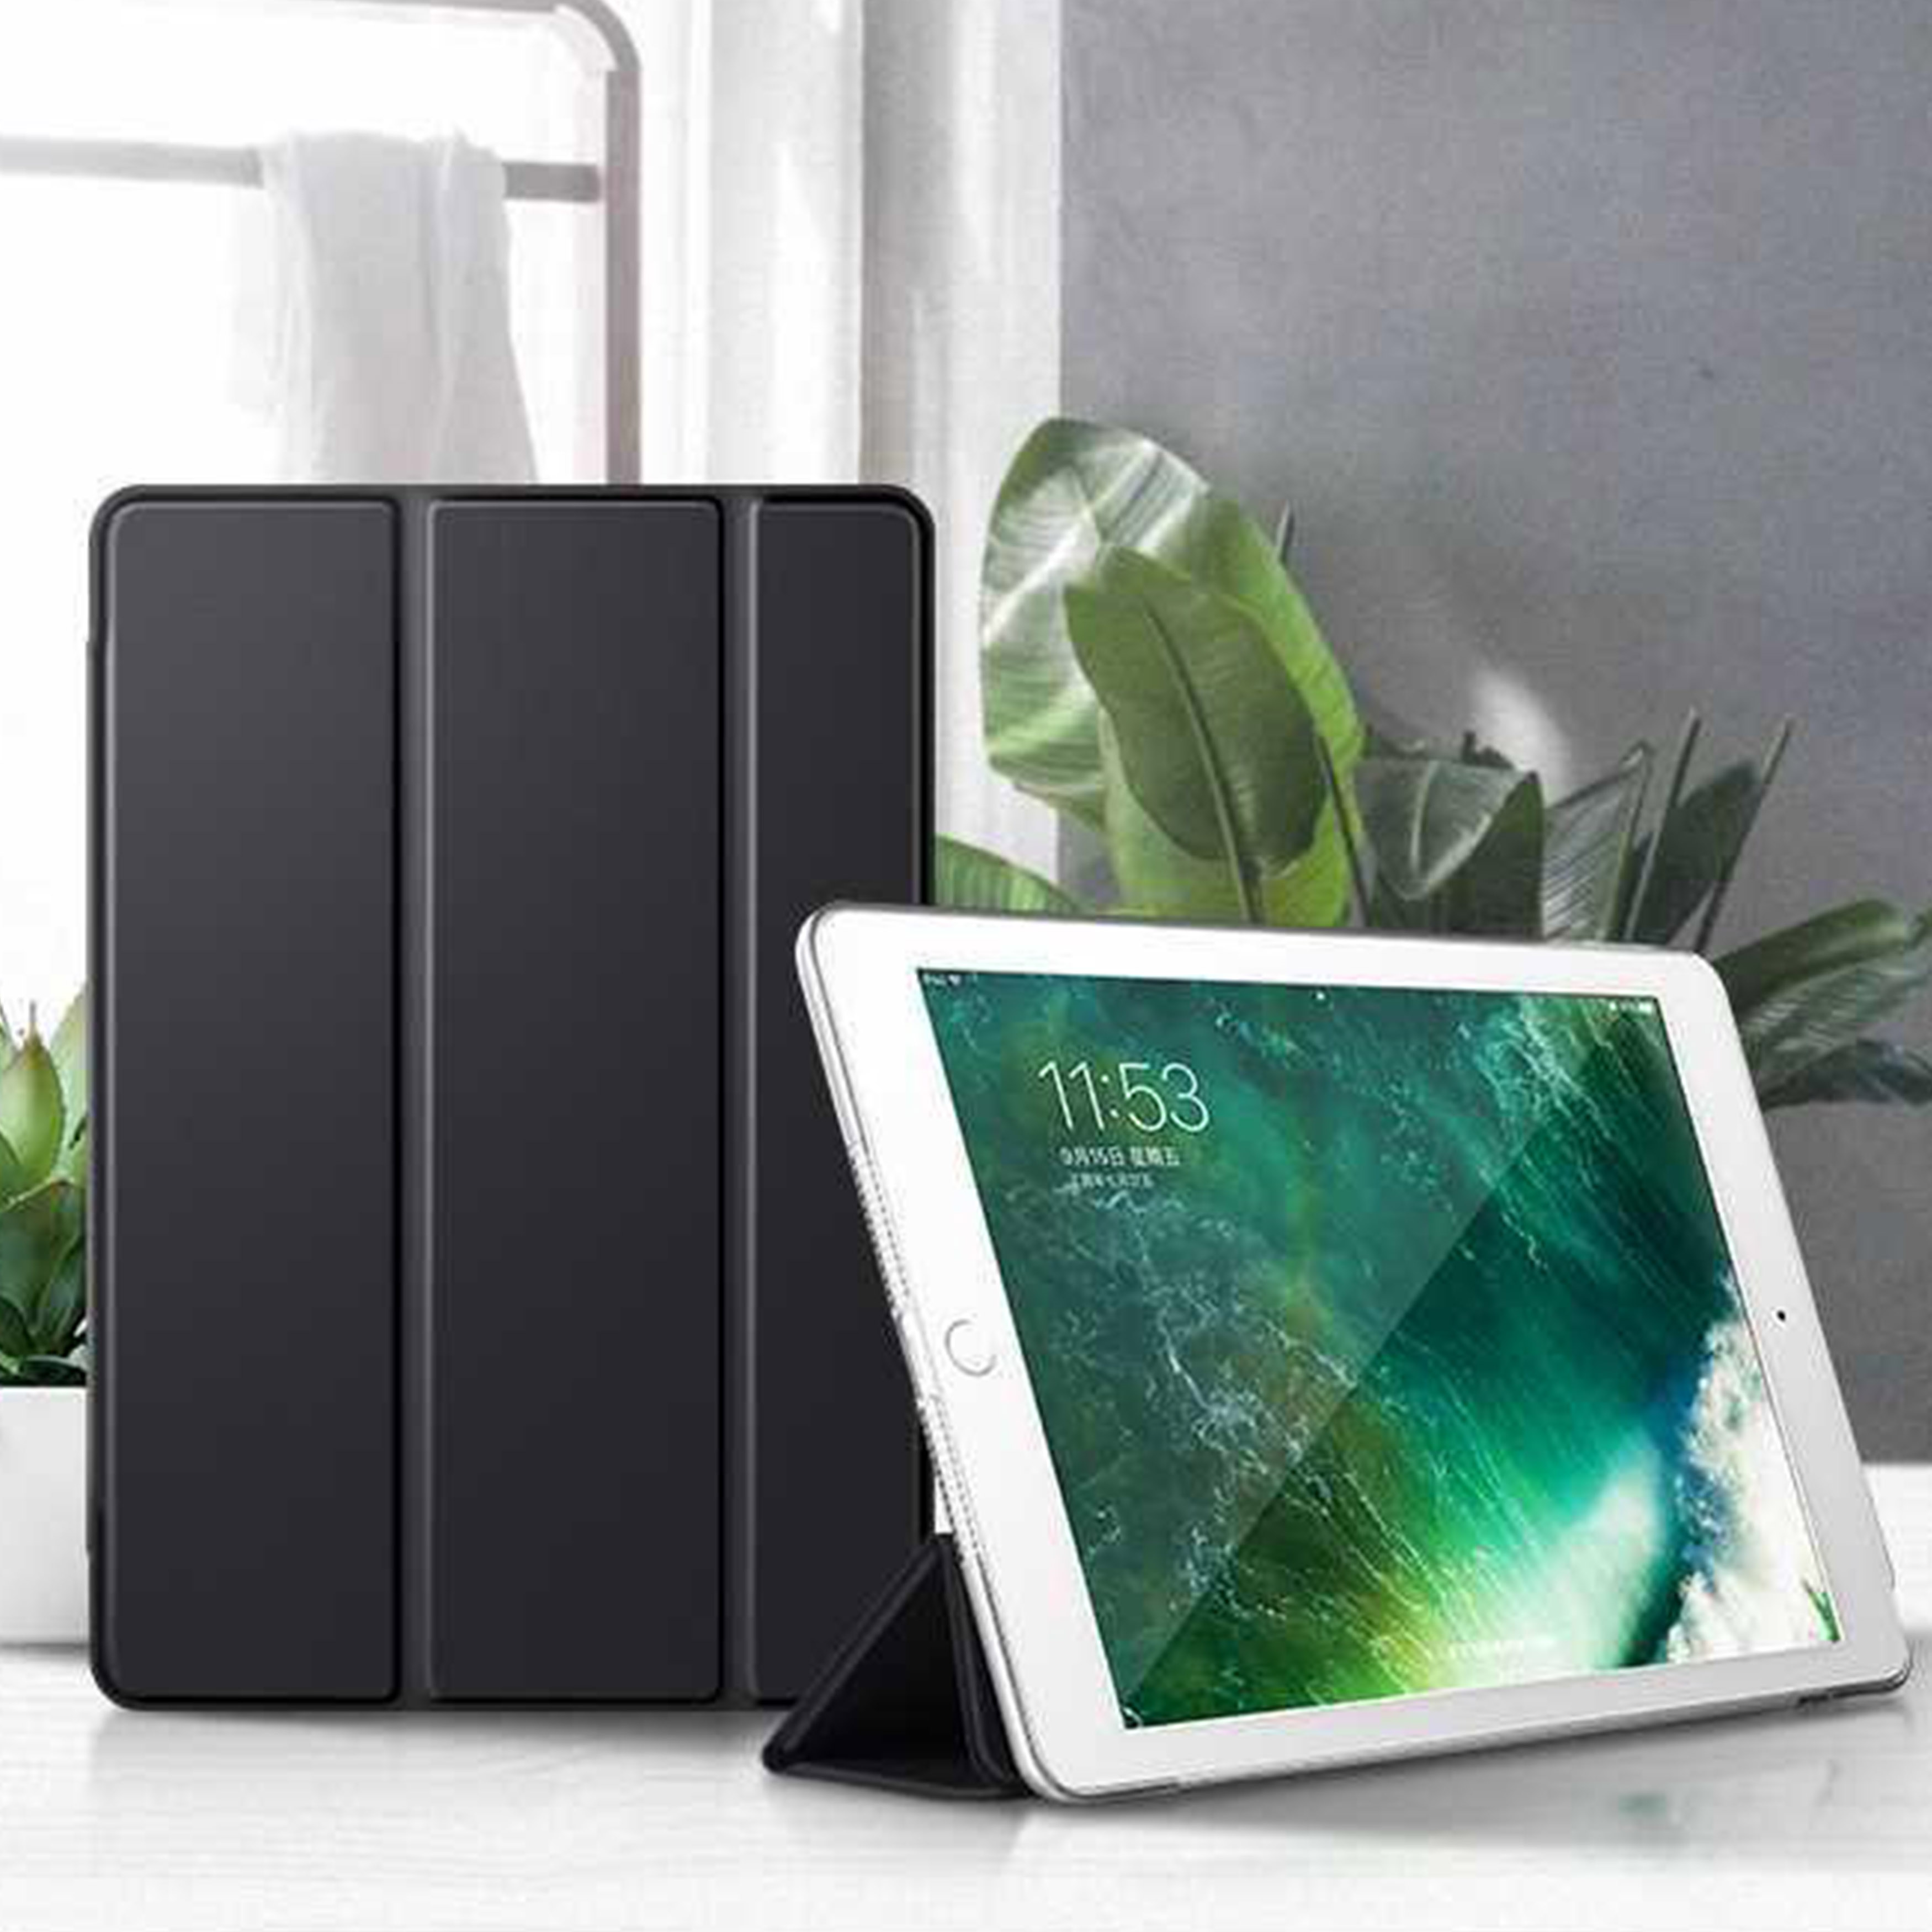 Leather case <font><b>for</b></font> <font><b>iPad</b></font> <font><b>Mini</b></font> <font><b>2</b></font> 3 7.9 inch folio <font><b>cover</b></font> <font><b>for</b></font> <font><b>mini</b></font> <font><b>2</b></font> <font><b>A1489</b></font> A1490 A1491 A1599 A1600 Tablet case Stand Auto Sleep Smart image